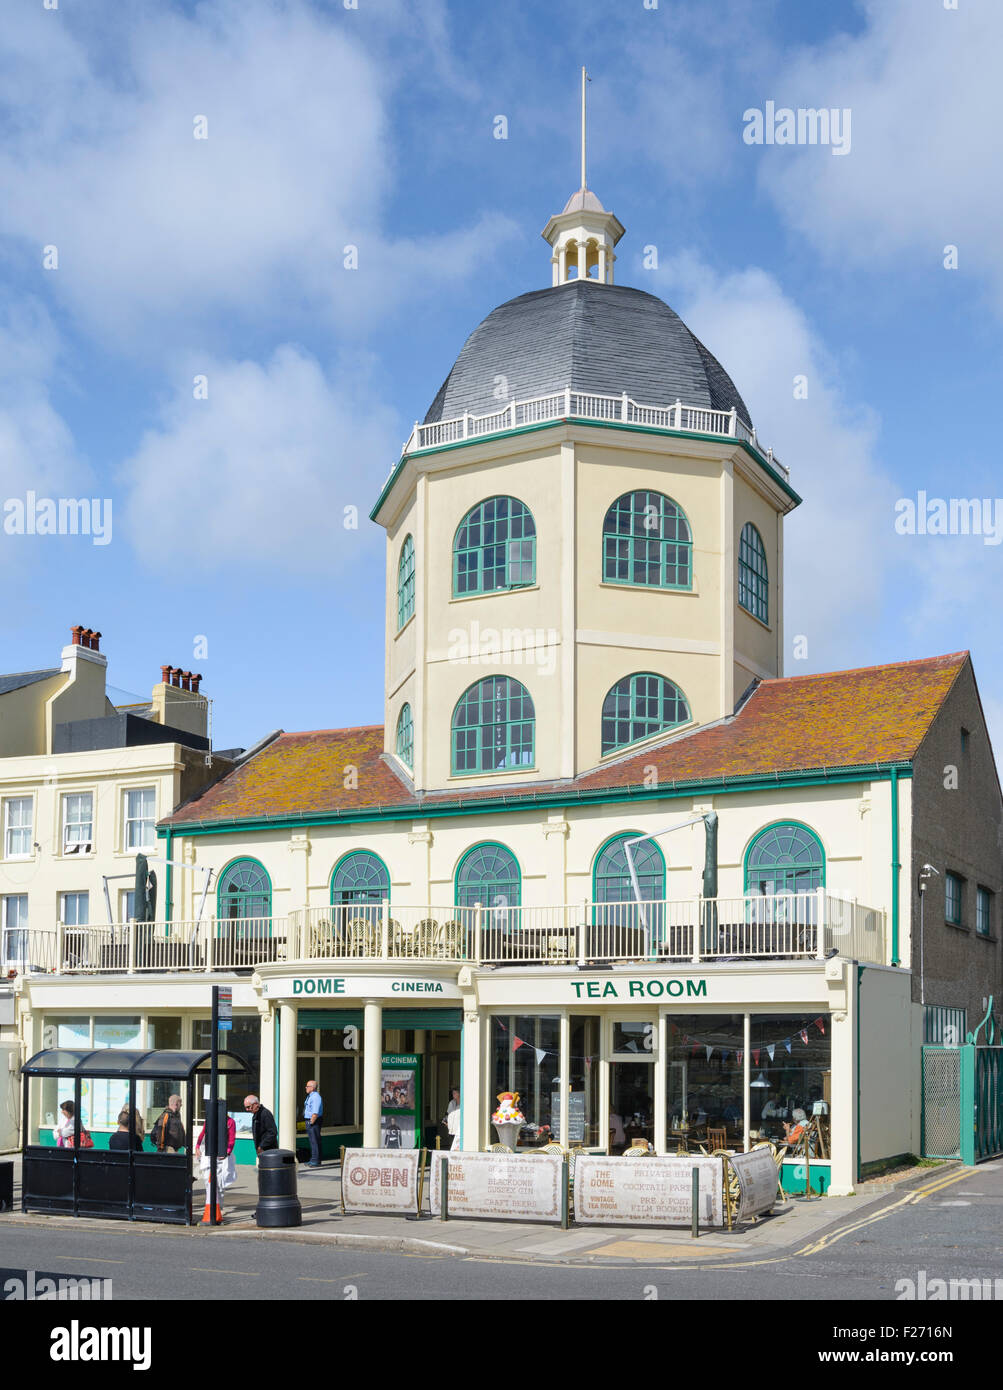 The Dome Cinema grade II listed building at Worthing, West Sussex, England, UK. - Stock Image